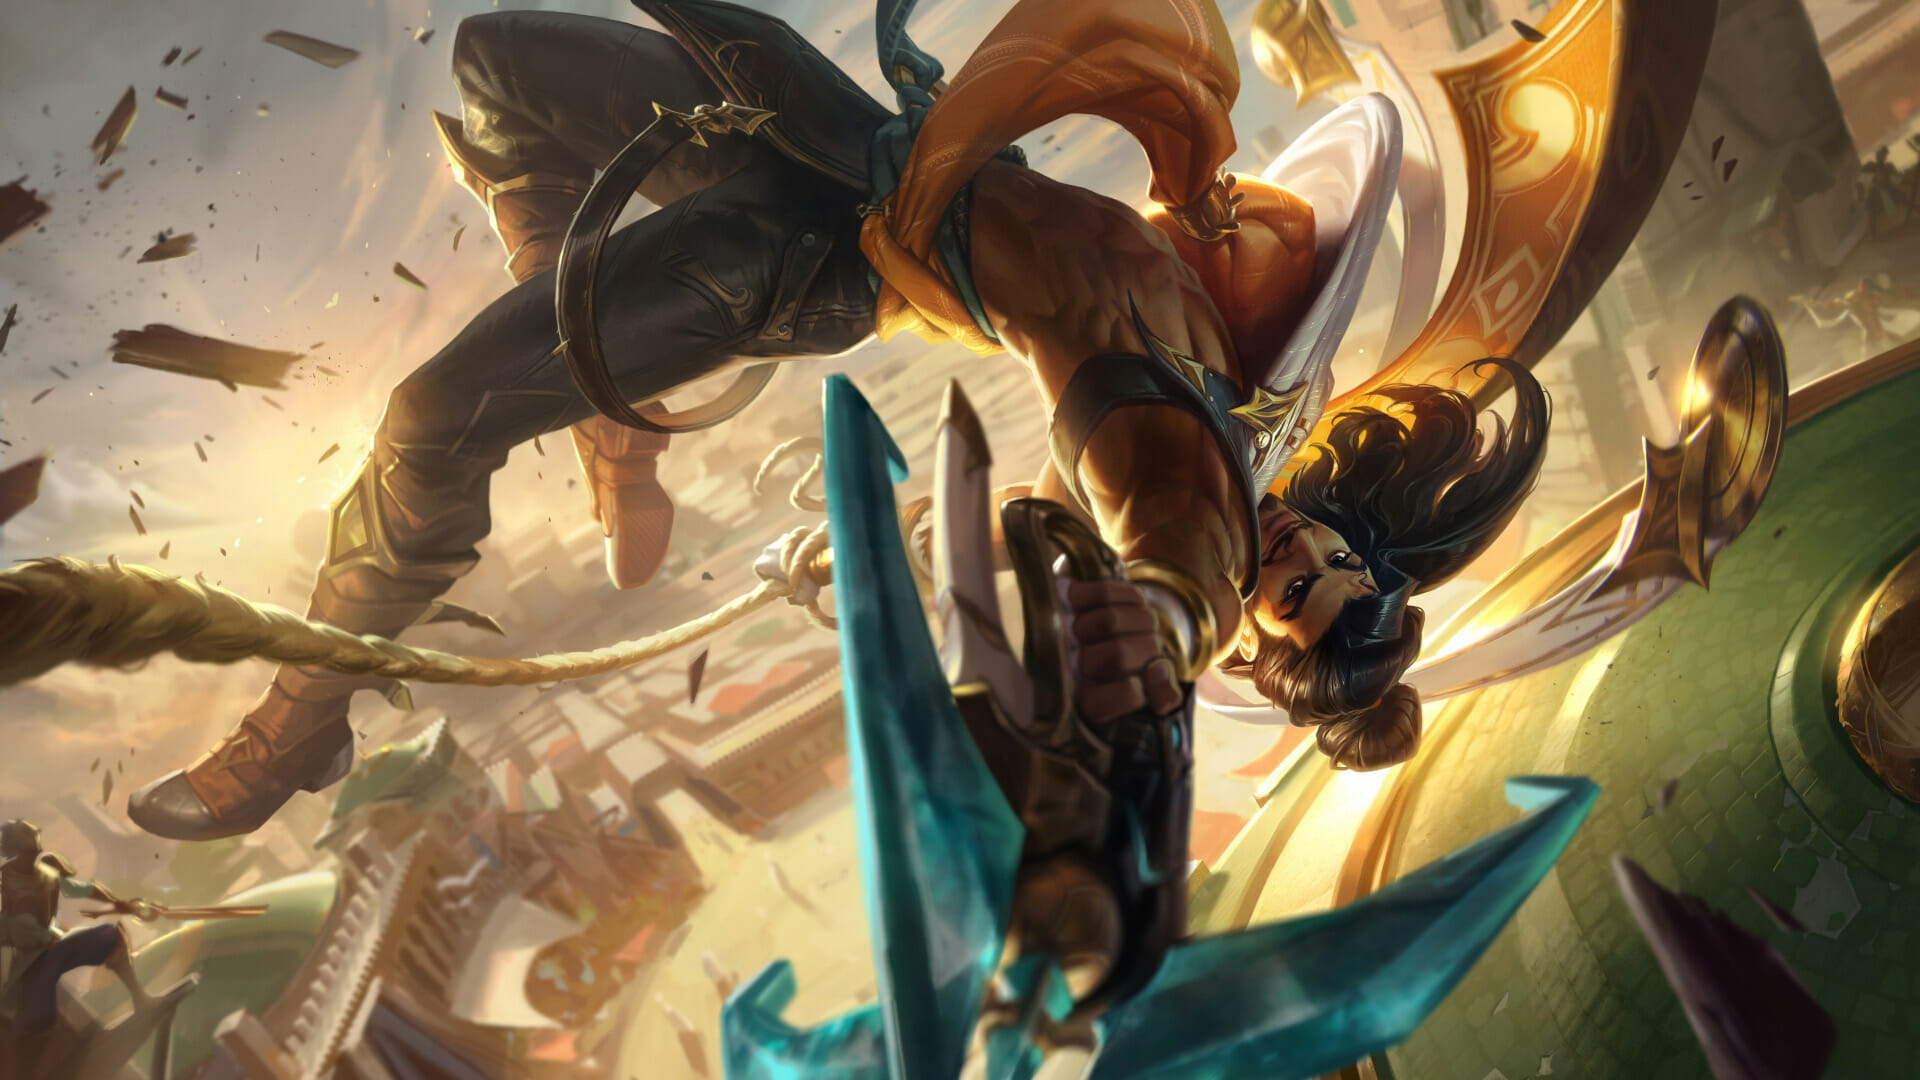 Akshan Champion Chosen in League of Legends doing a Flip in the Air with Weapons